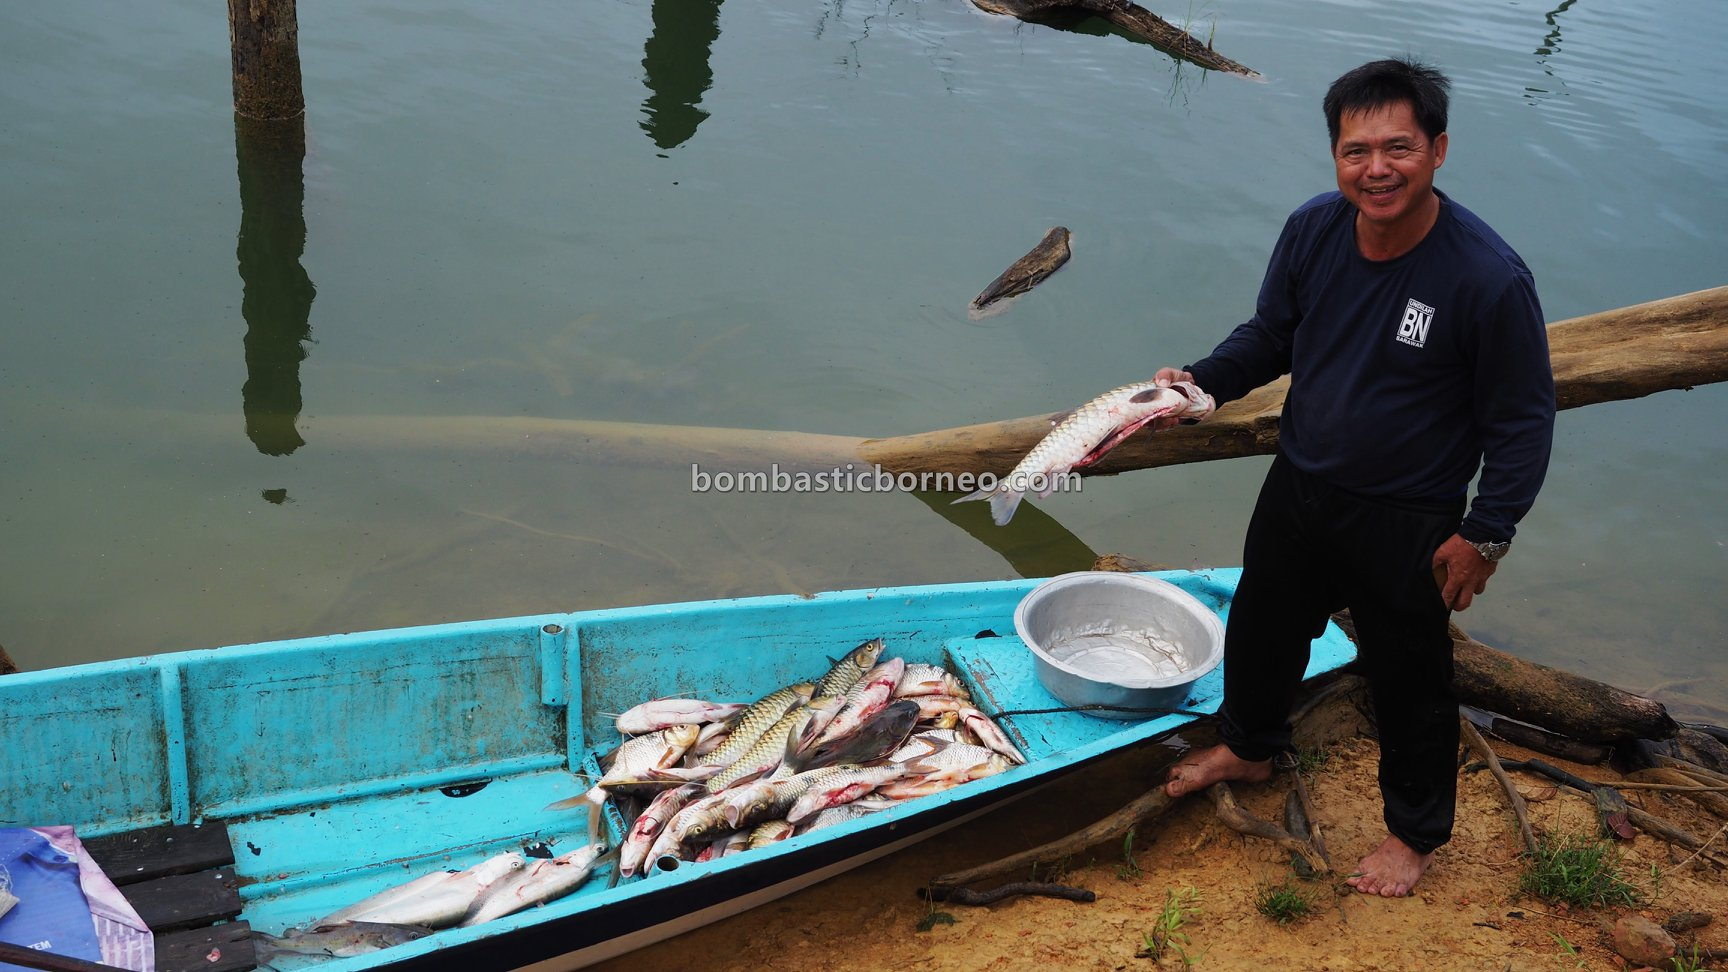 empangan, exotic fish, Ikan semah, traditional, hunting, memancing, homestay, Belaga, Kapit, Orang Ulu, travel guide, Trans Border, Borneo, 婆罗洲钓鱼之旅, 砂拉越峇贡水坝, 马来西亚旅游景点